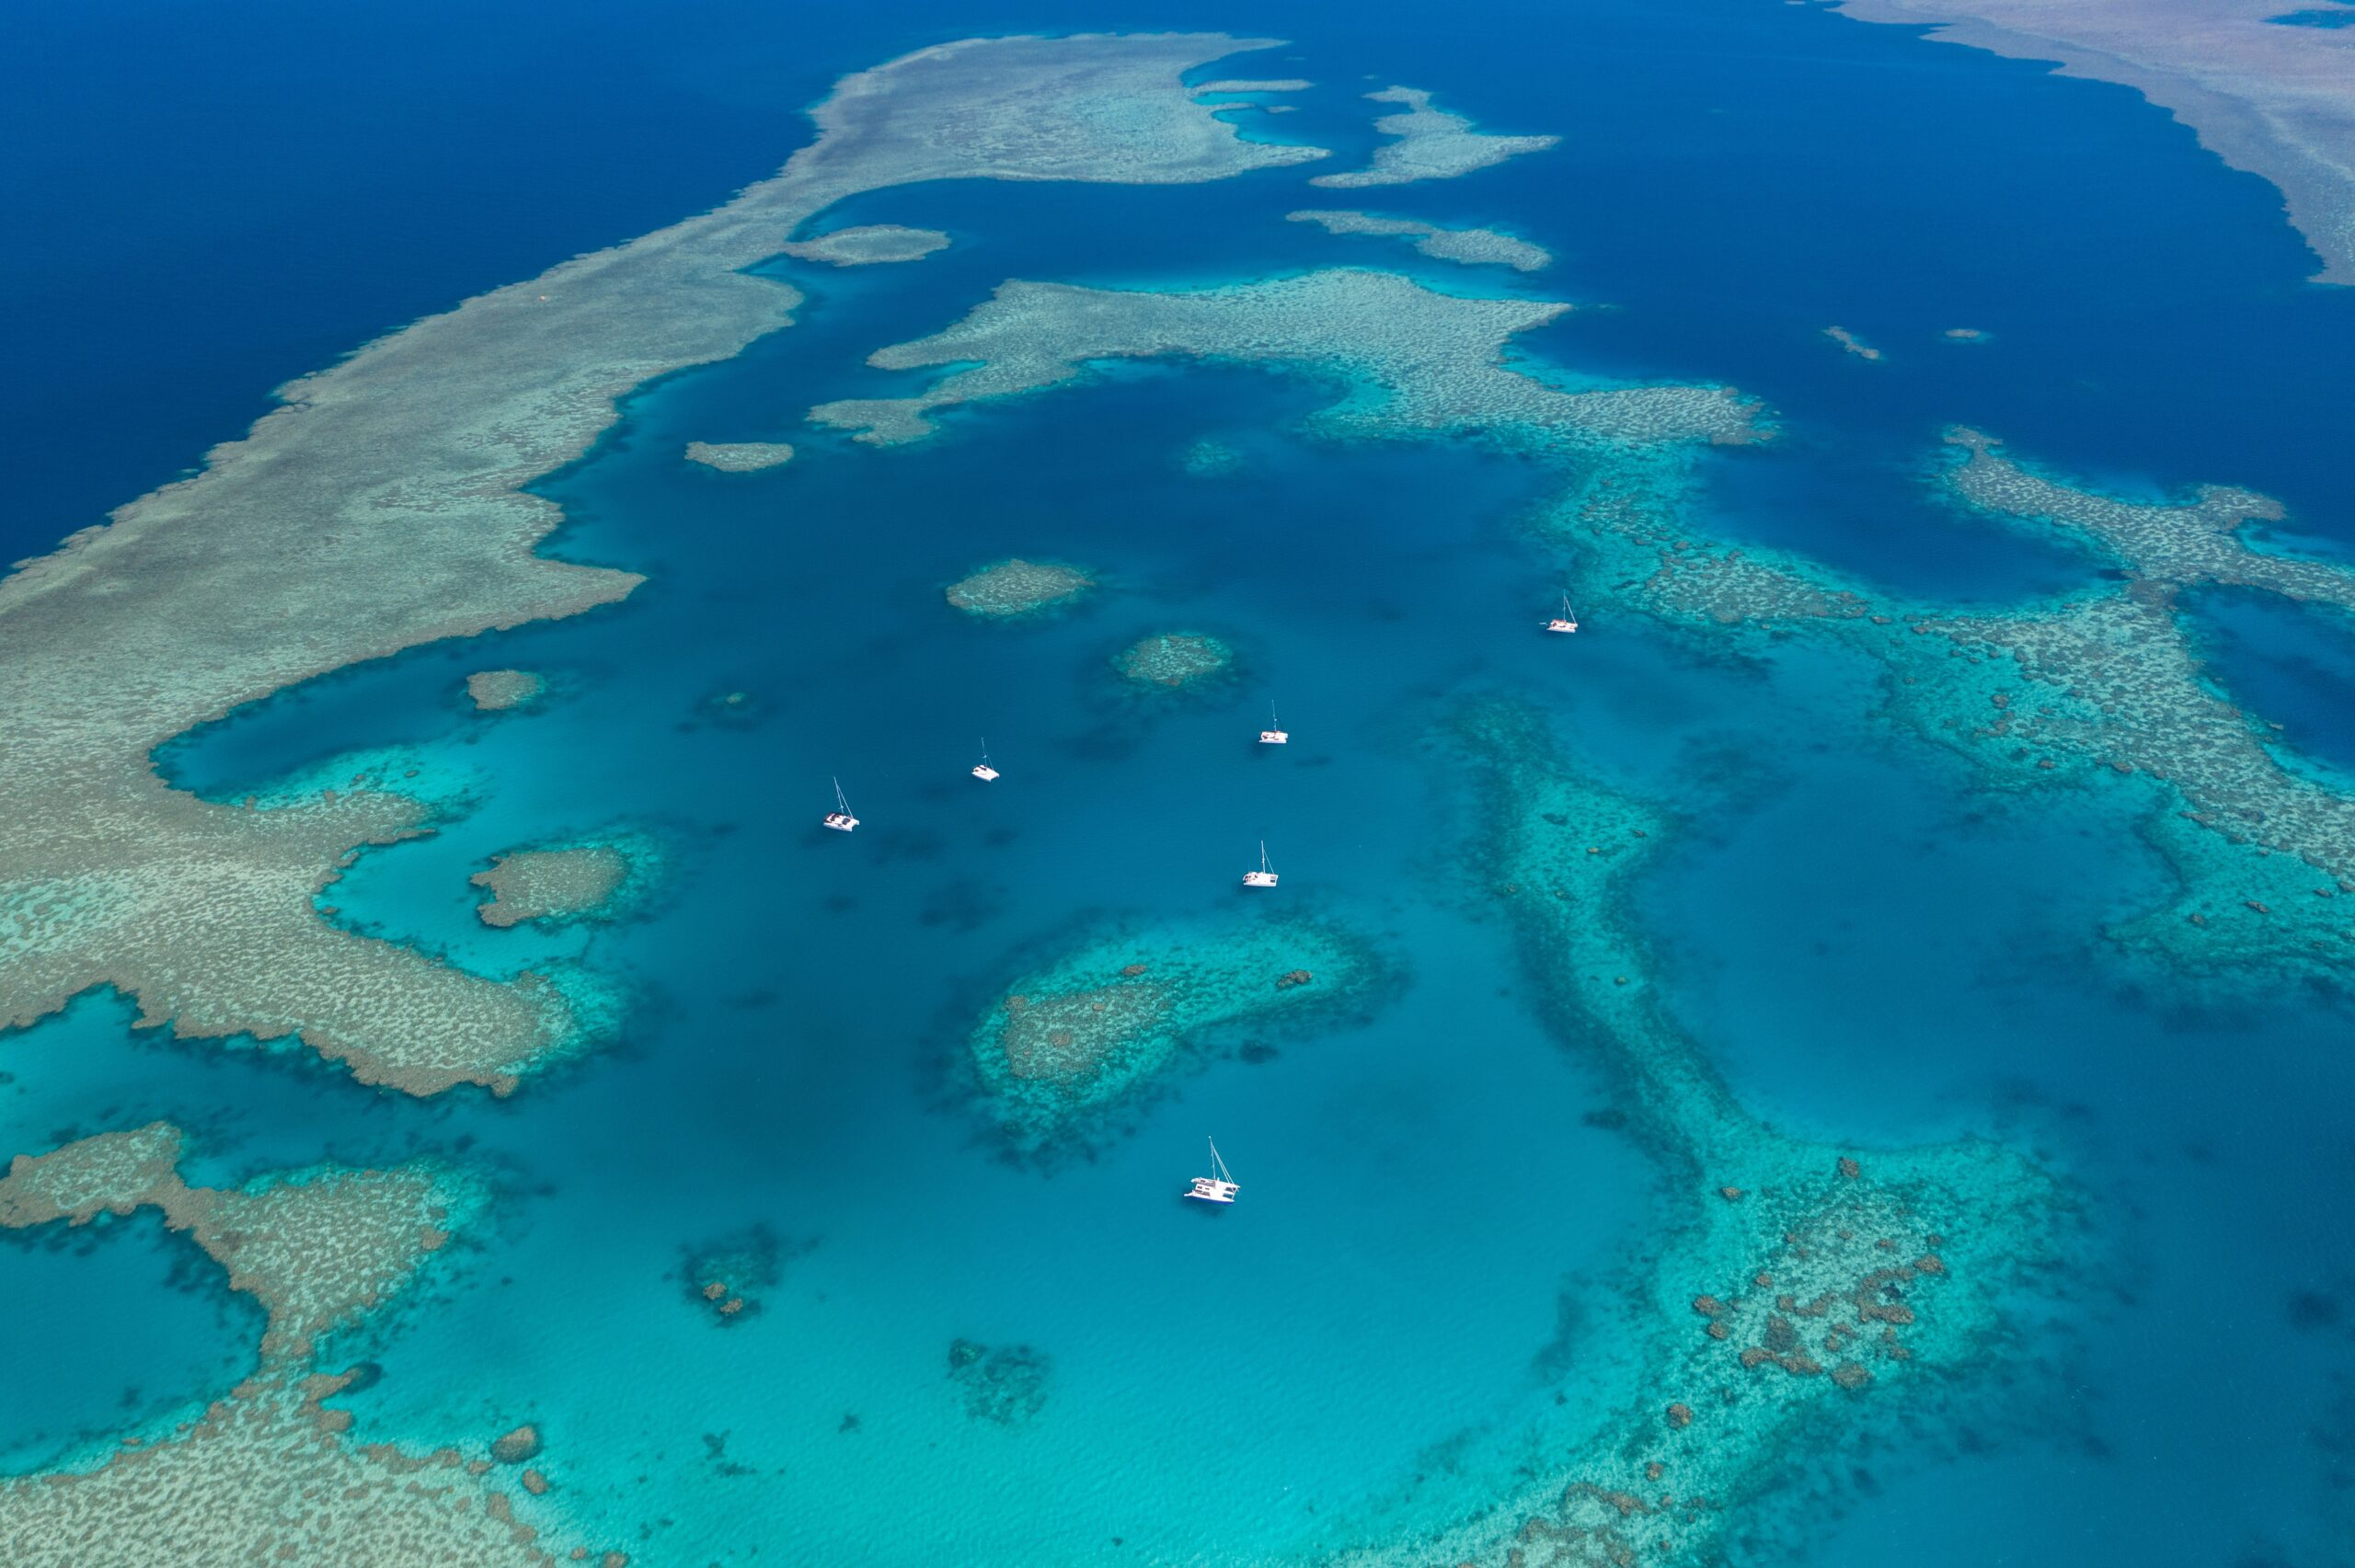 The Bees Knees - Private Charter - Outer Reef mothership liveaboard with Wings 3 and Wings 1 - coming soon